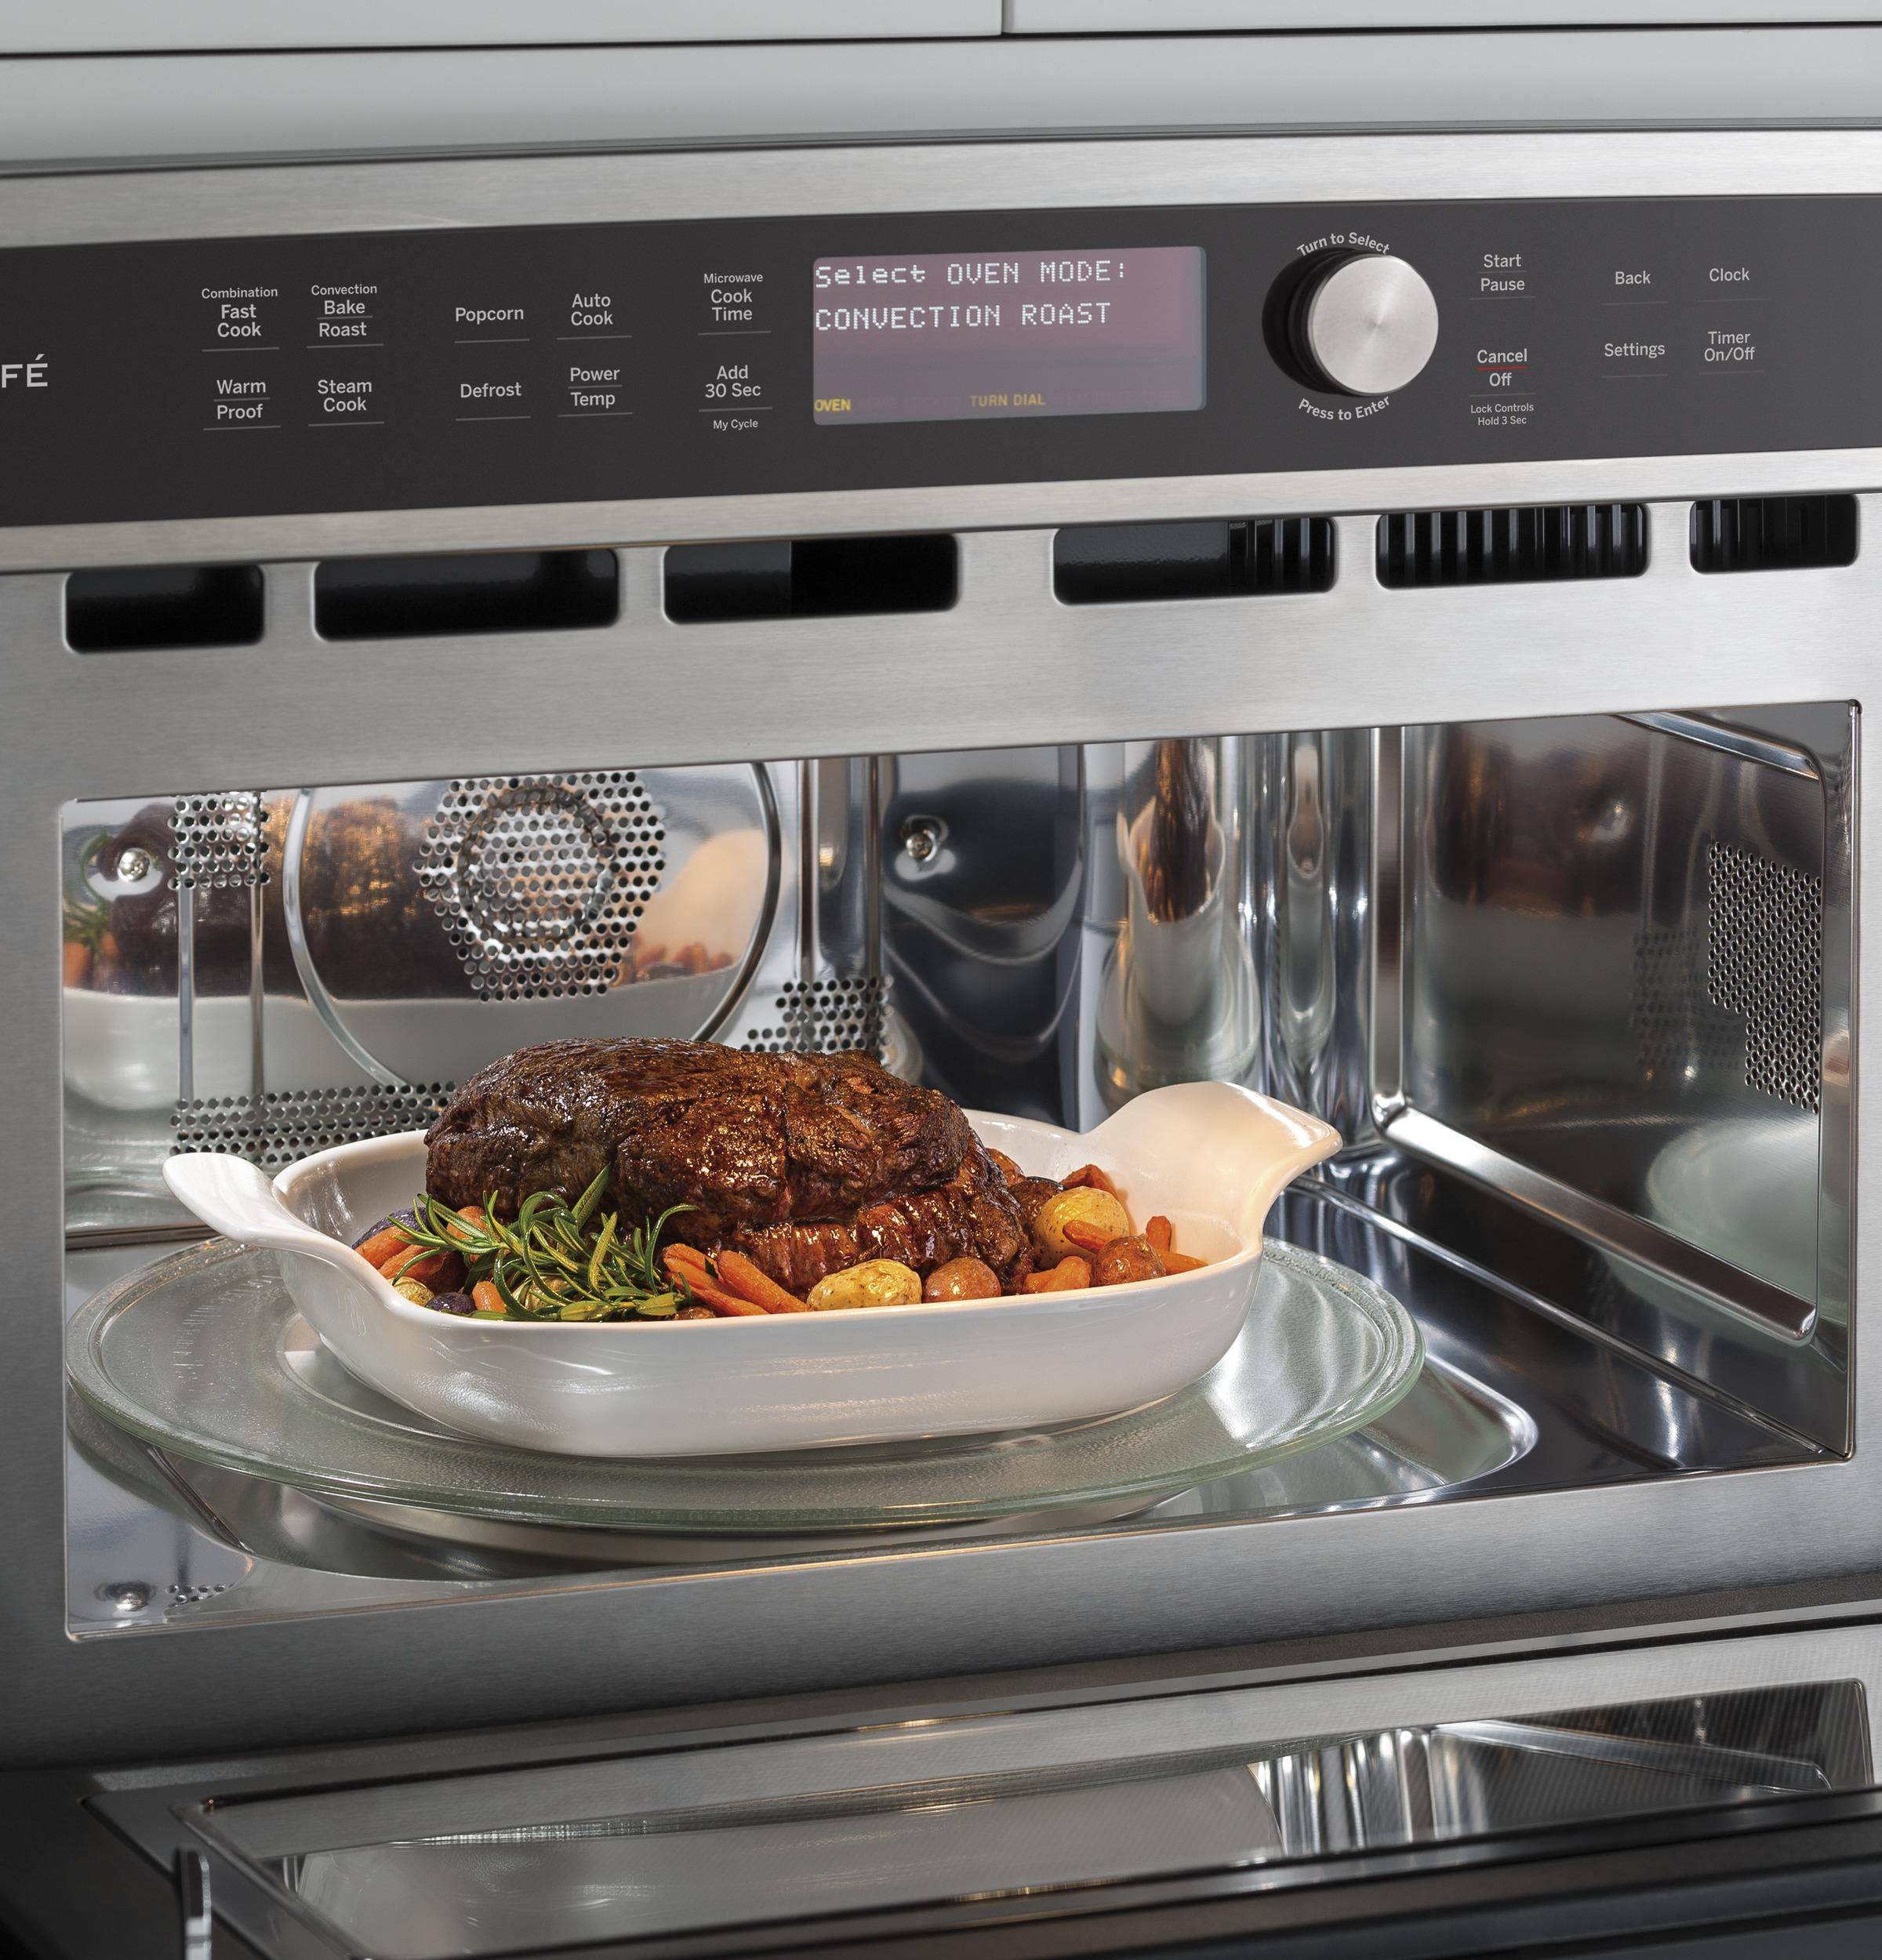 oven hidden additional - Microwave Convection Oven